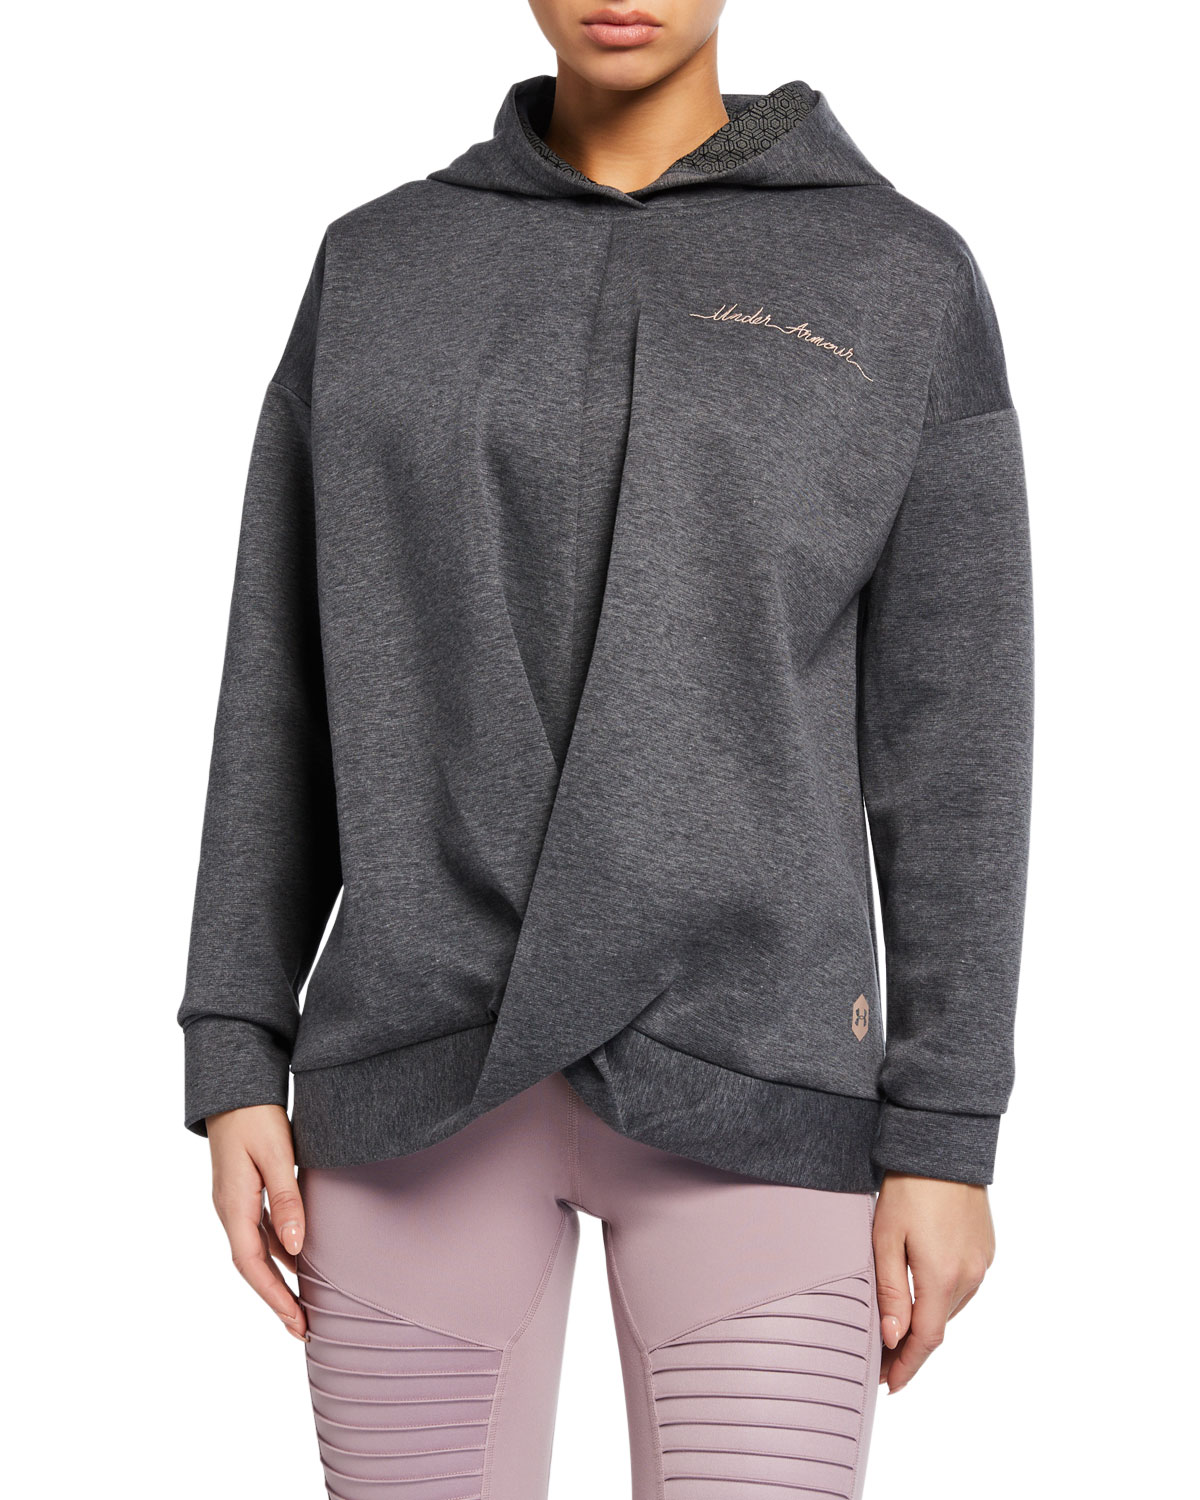 Under Armour T-shirts LOGO SCRIPT RECOVERY FLEECE WRAP-FRONT HOODIE SWEATSHIRT